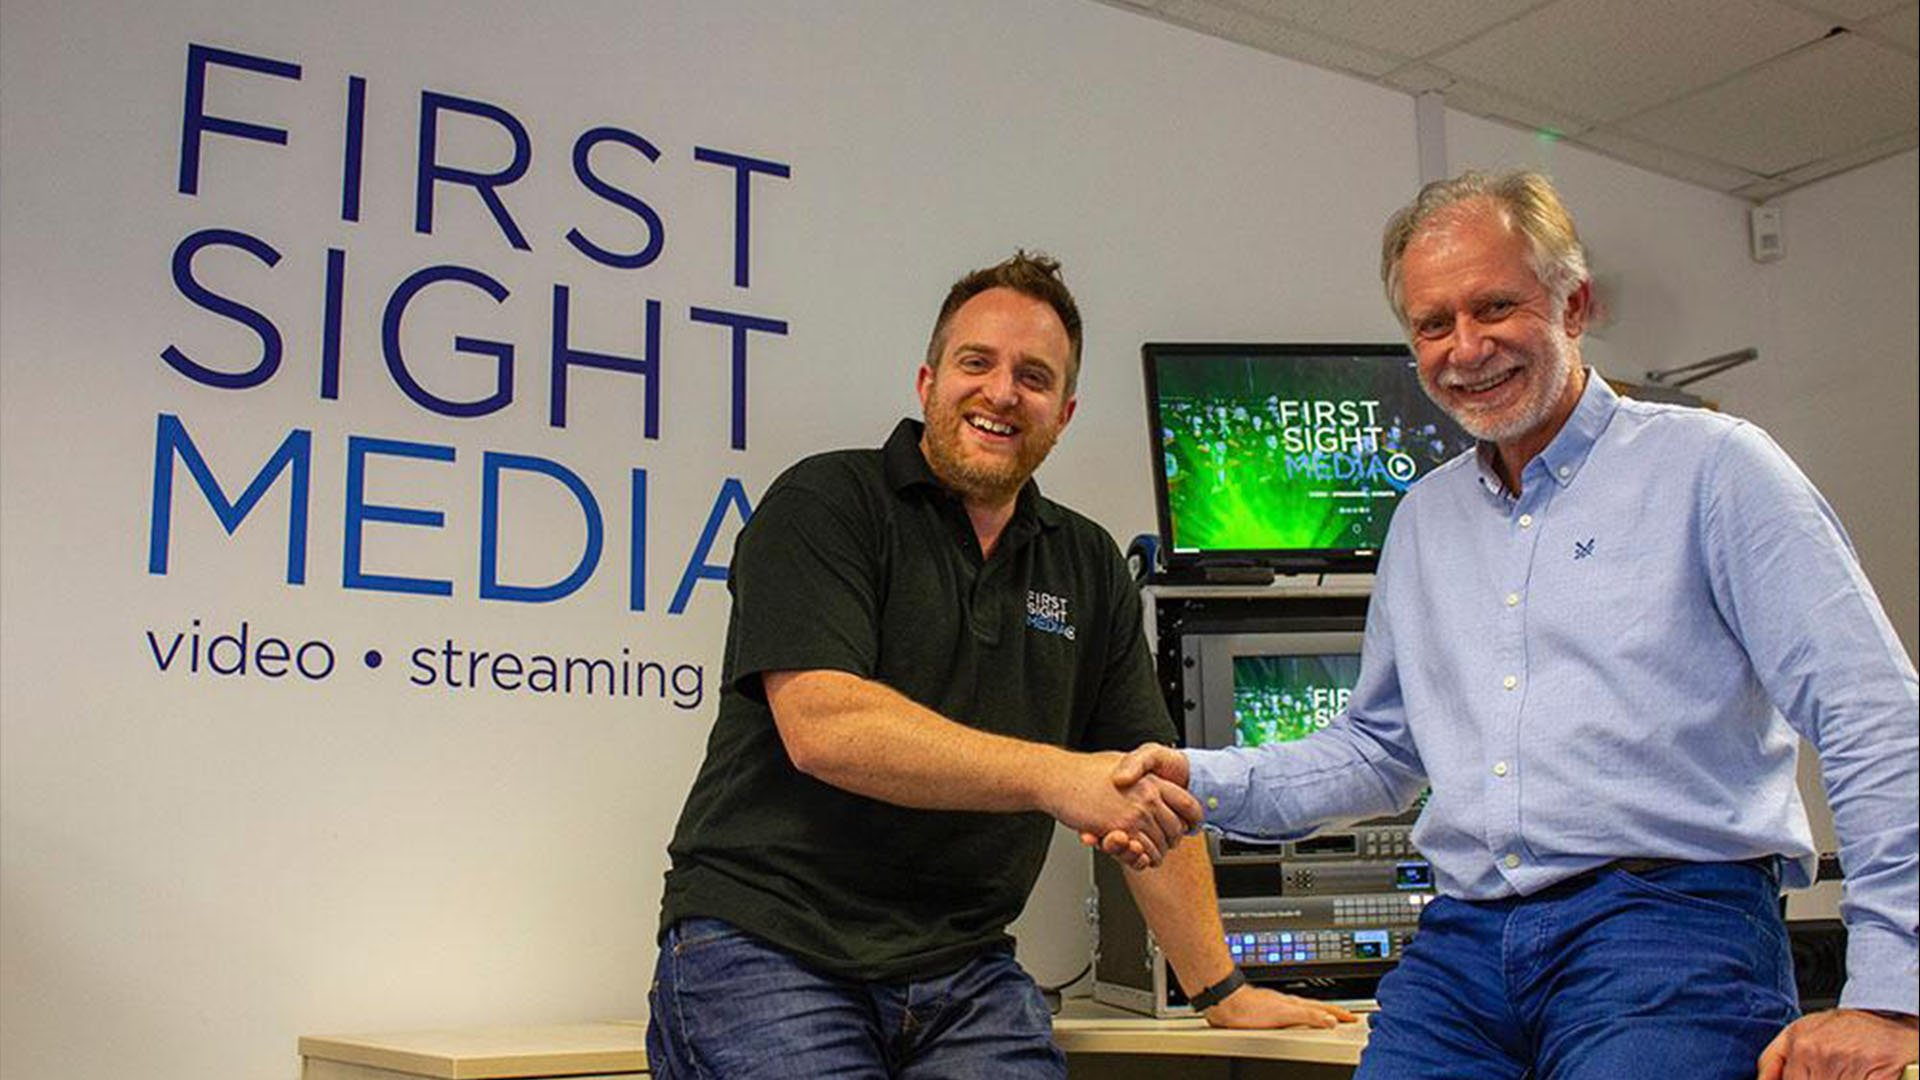 First Sight Media acquires Visions Unlimited